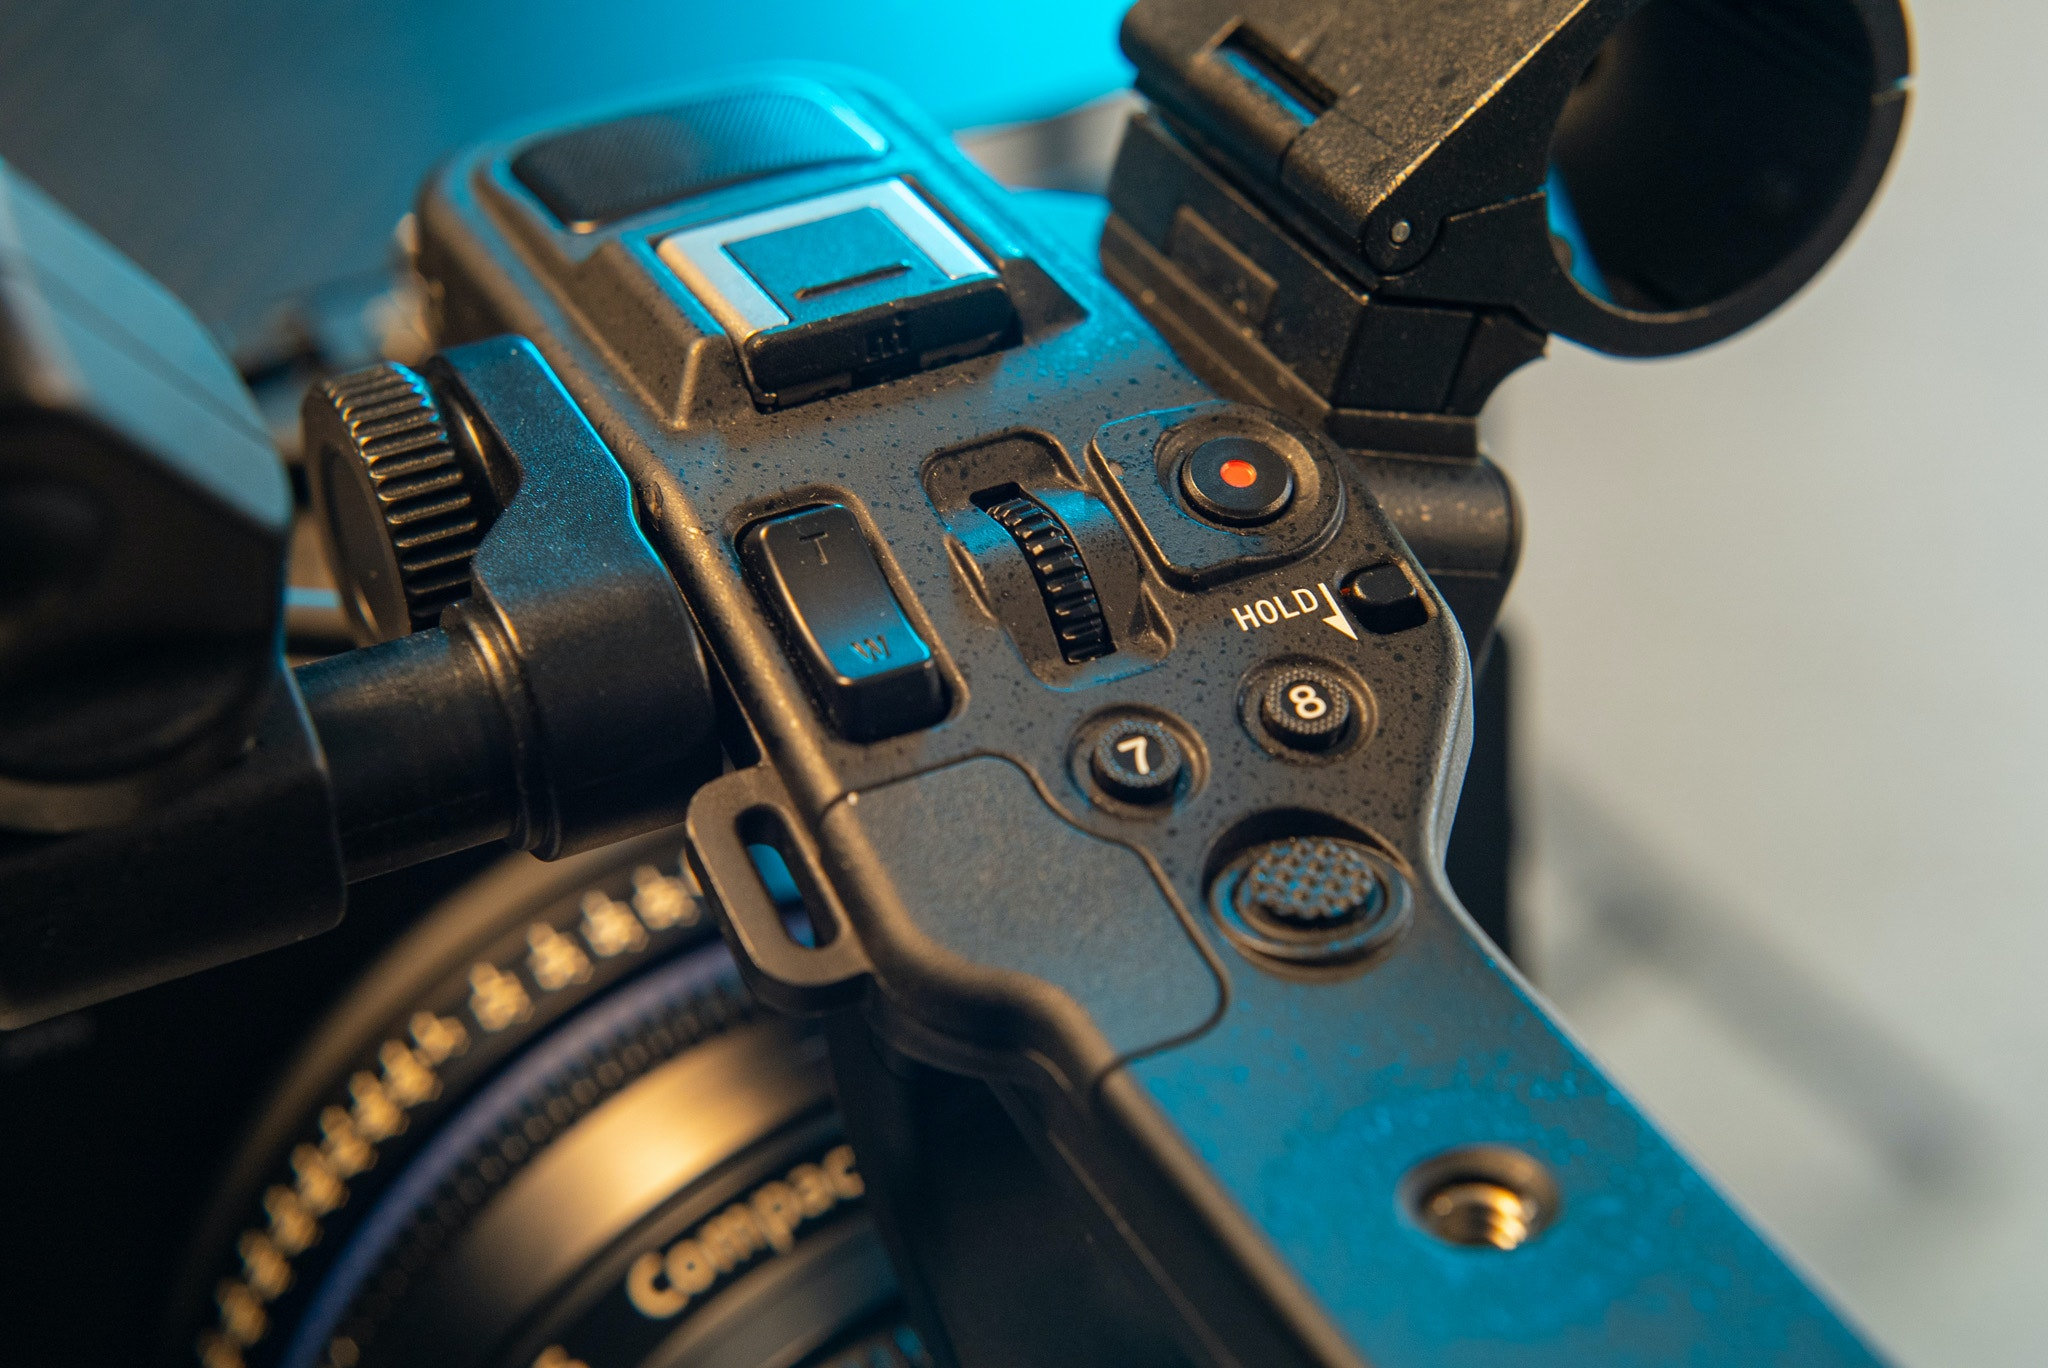 Sony Fx6 side handle with internal mic, assignable buttons and XLR inputs